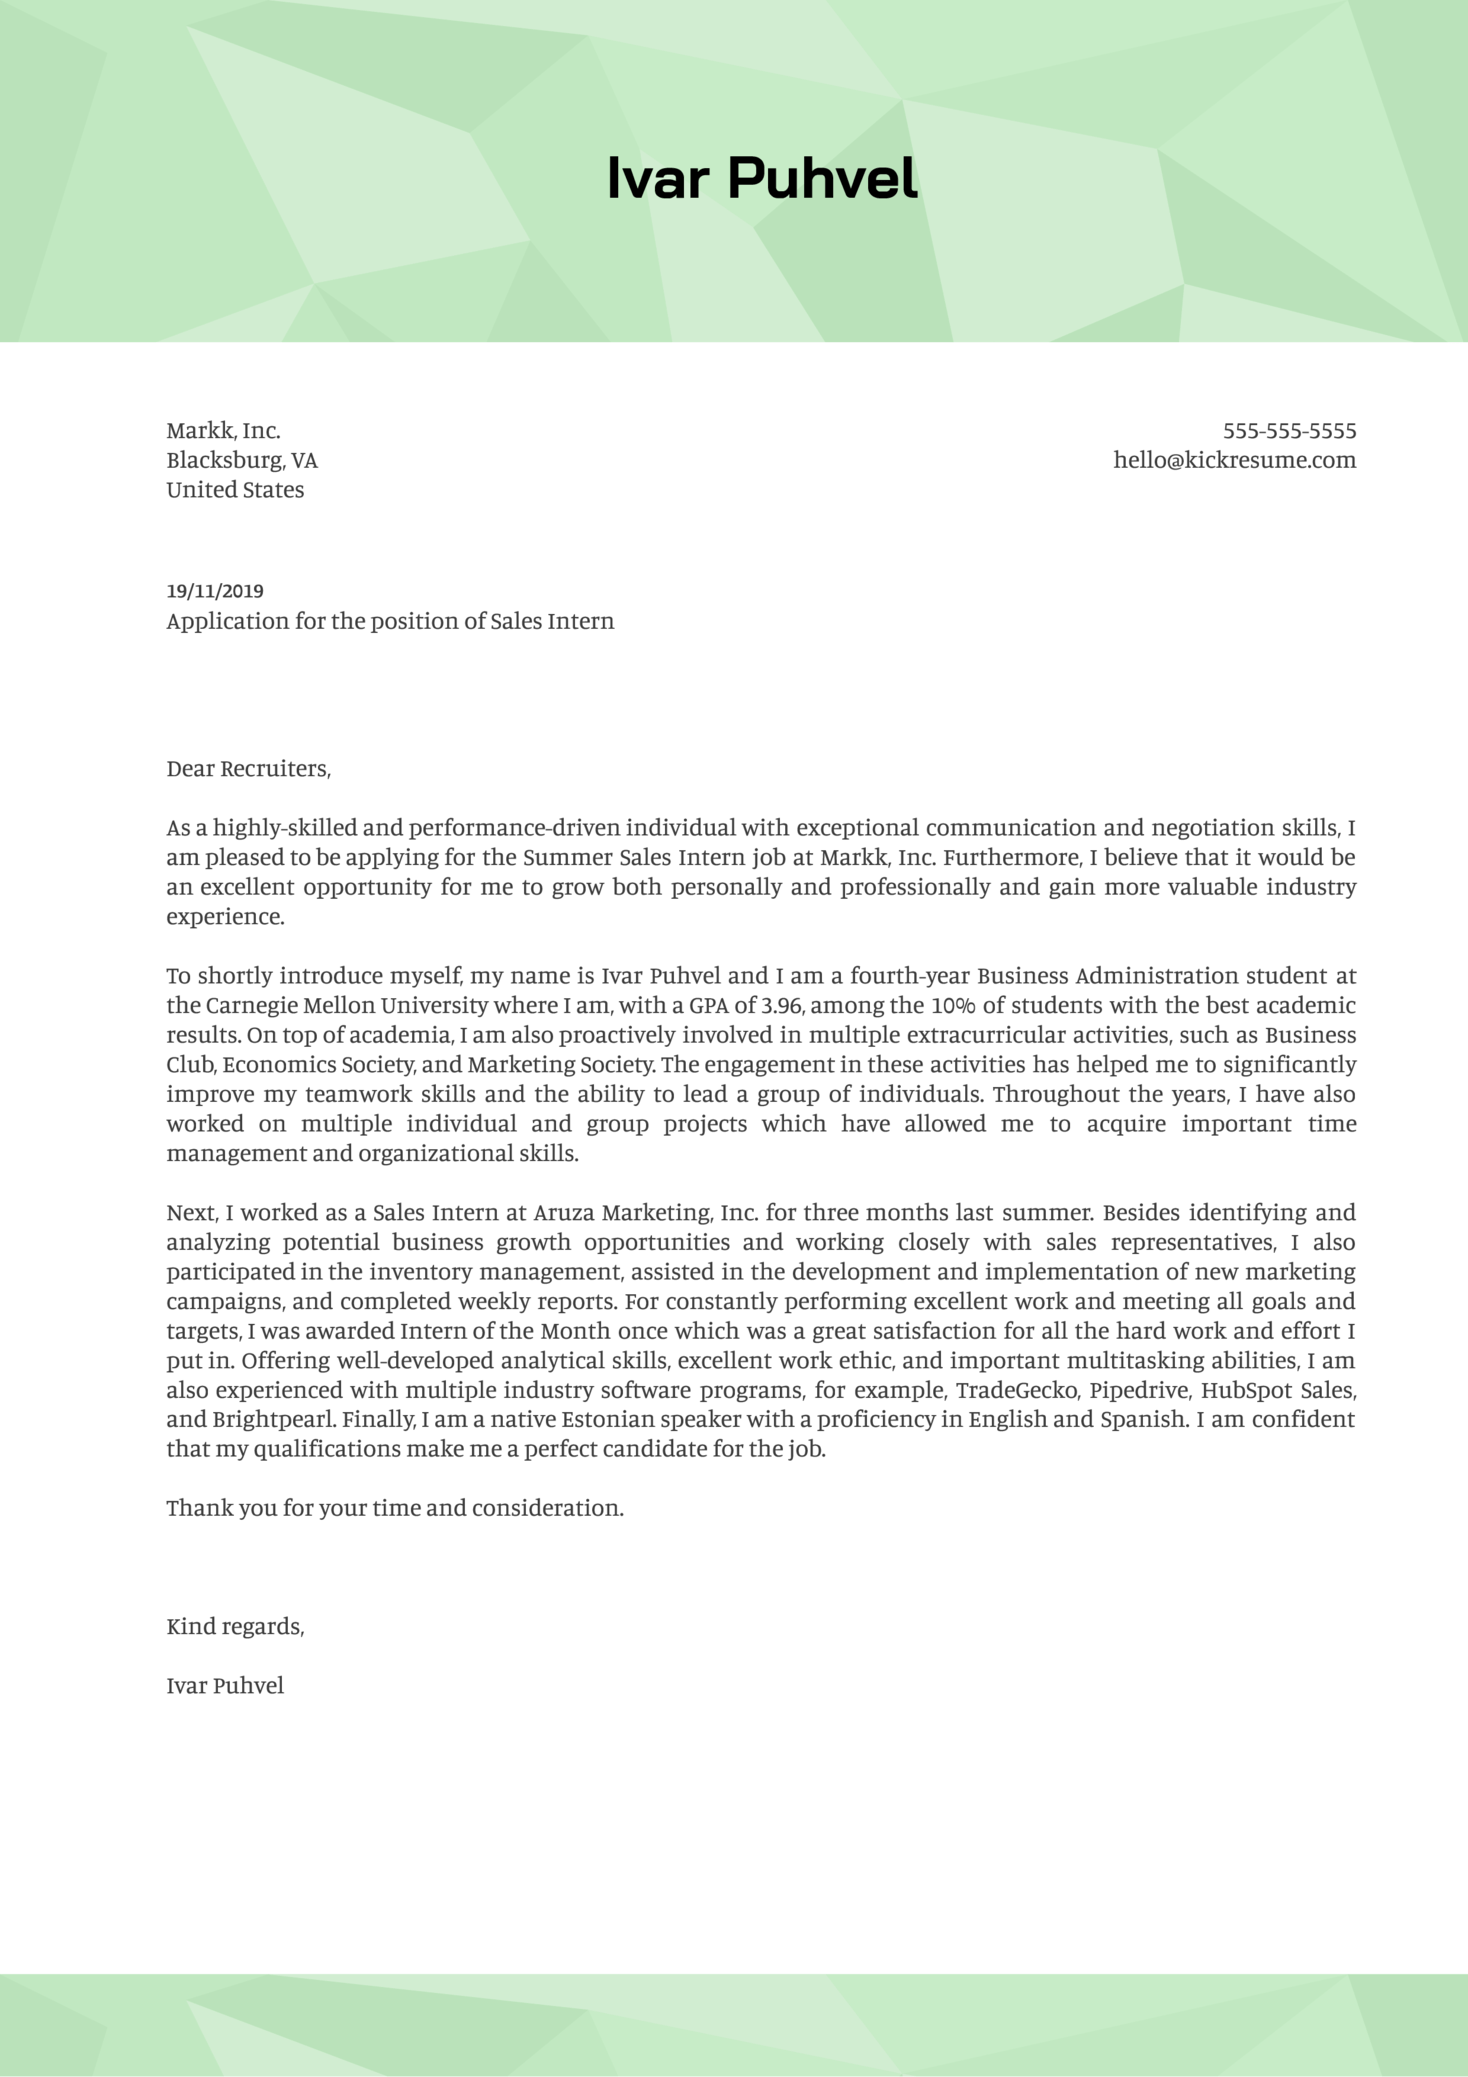 Sales Intern Cover Letter Example